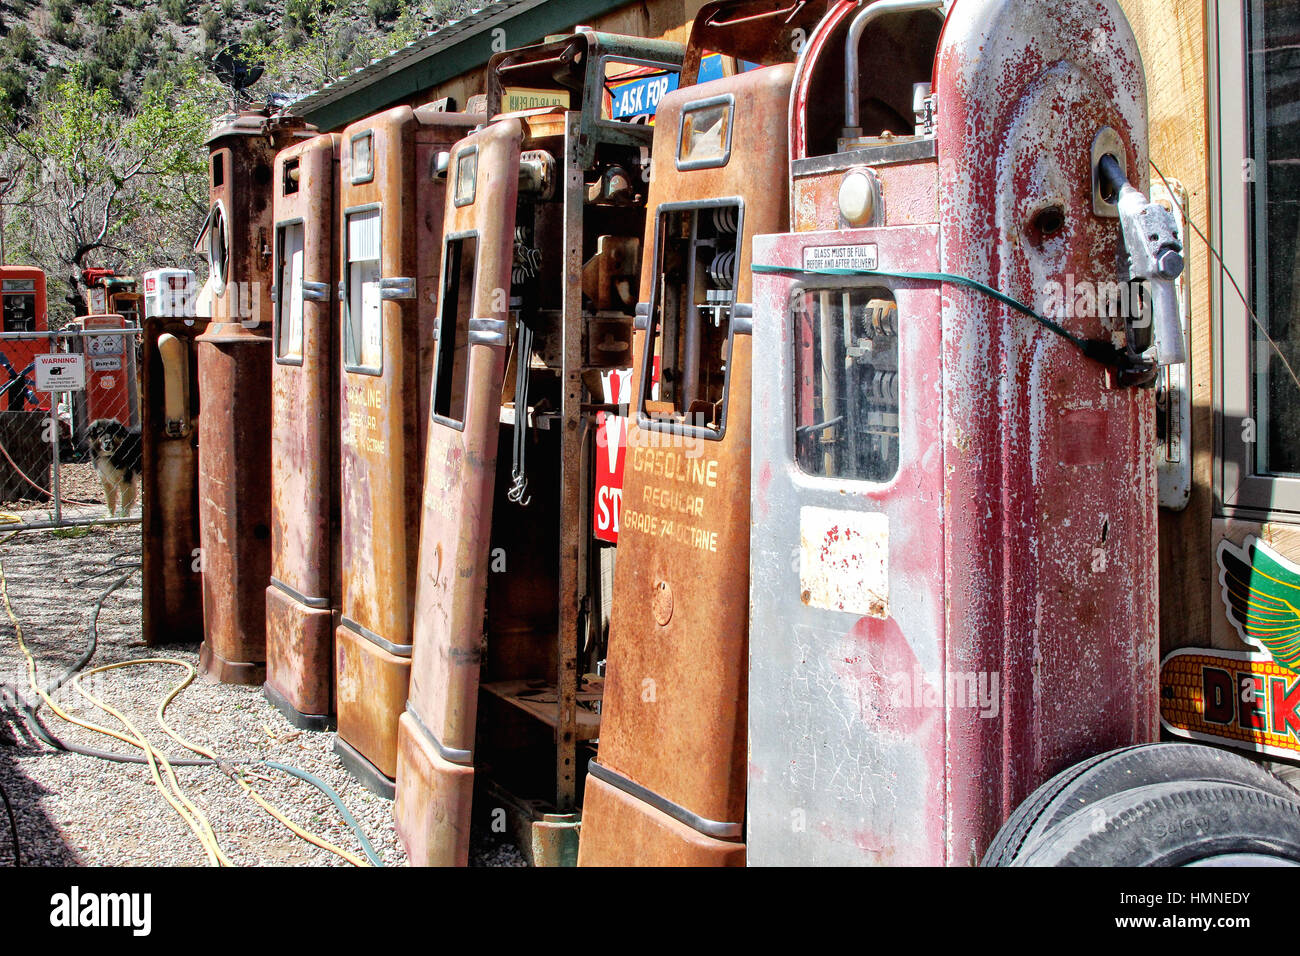 Gasoline Alley - Classical Gas on the Low Road to Taos in New Mexico features historic autos and related memorabilia - Stock Image